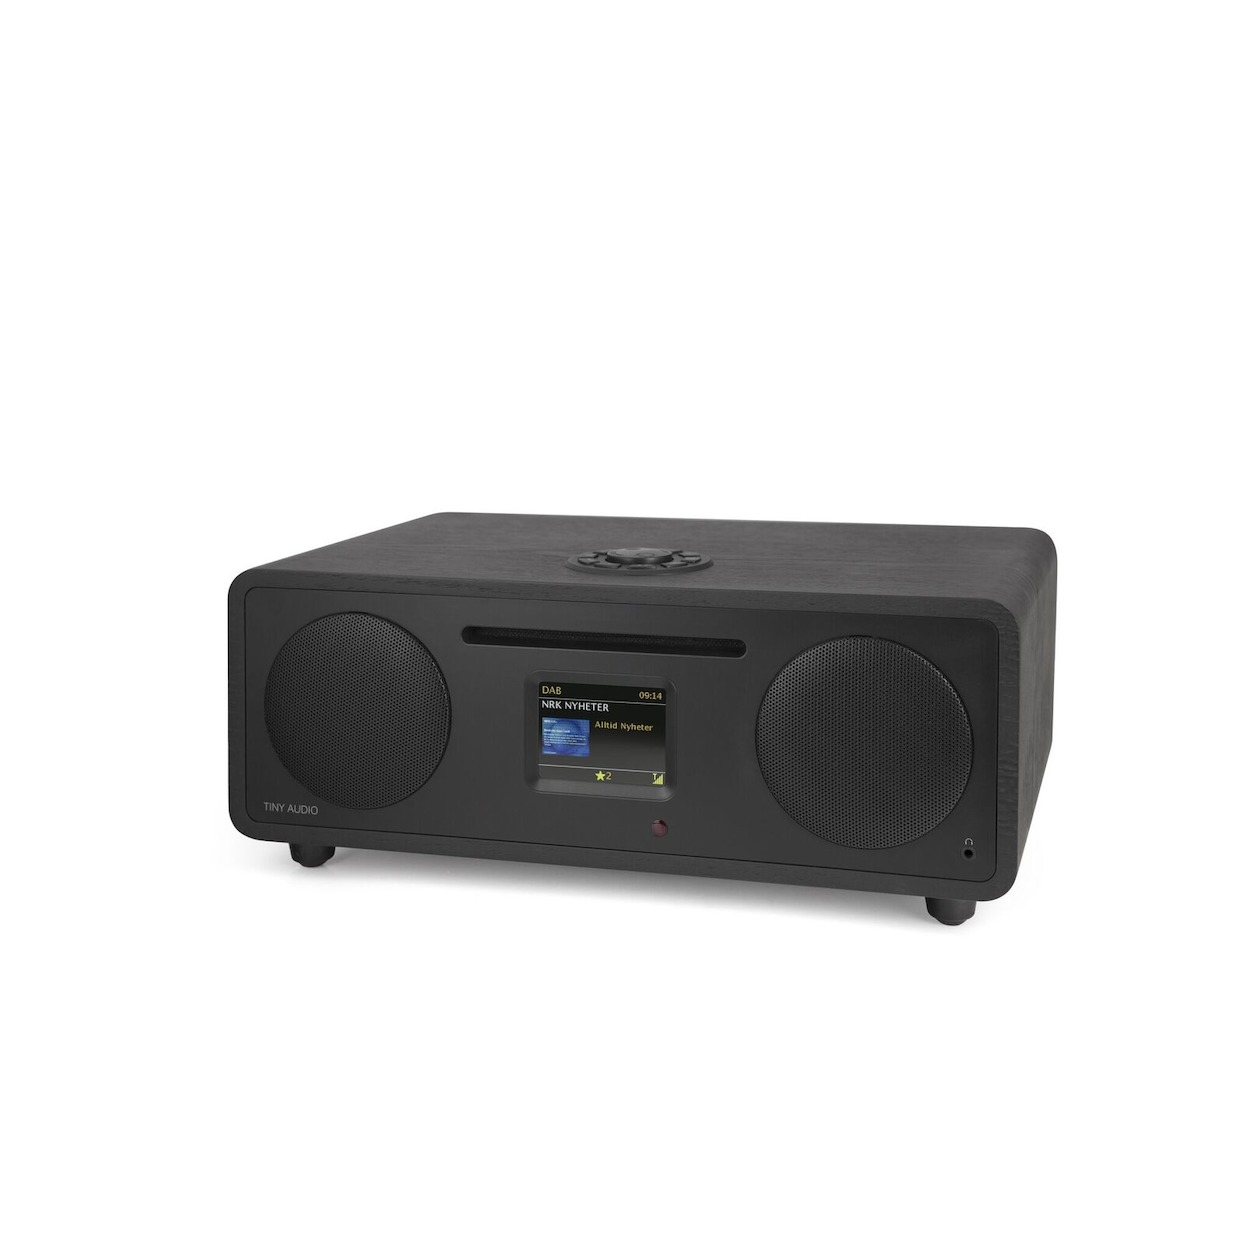 Tiny Audio dab radio Stereo WIDE DAB+ radio zwart